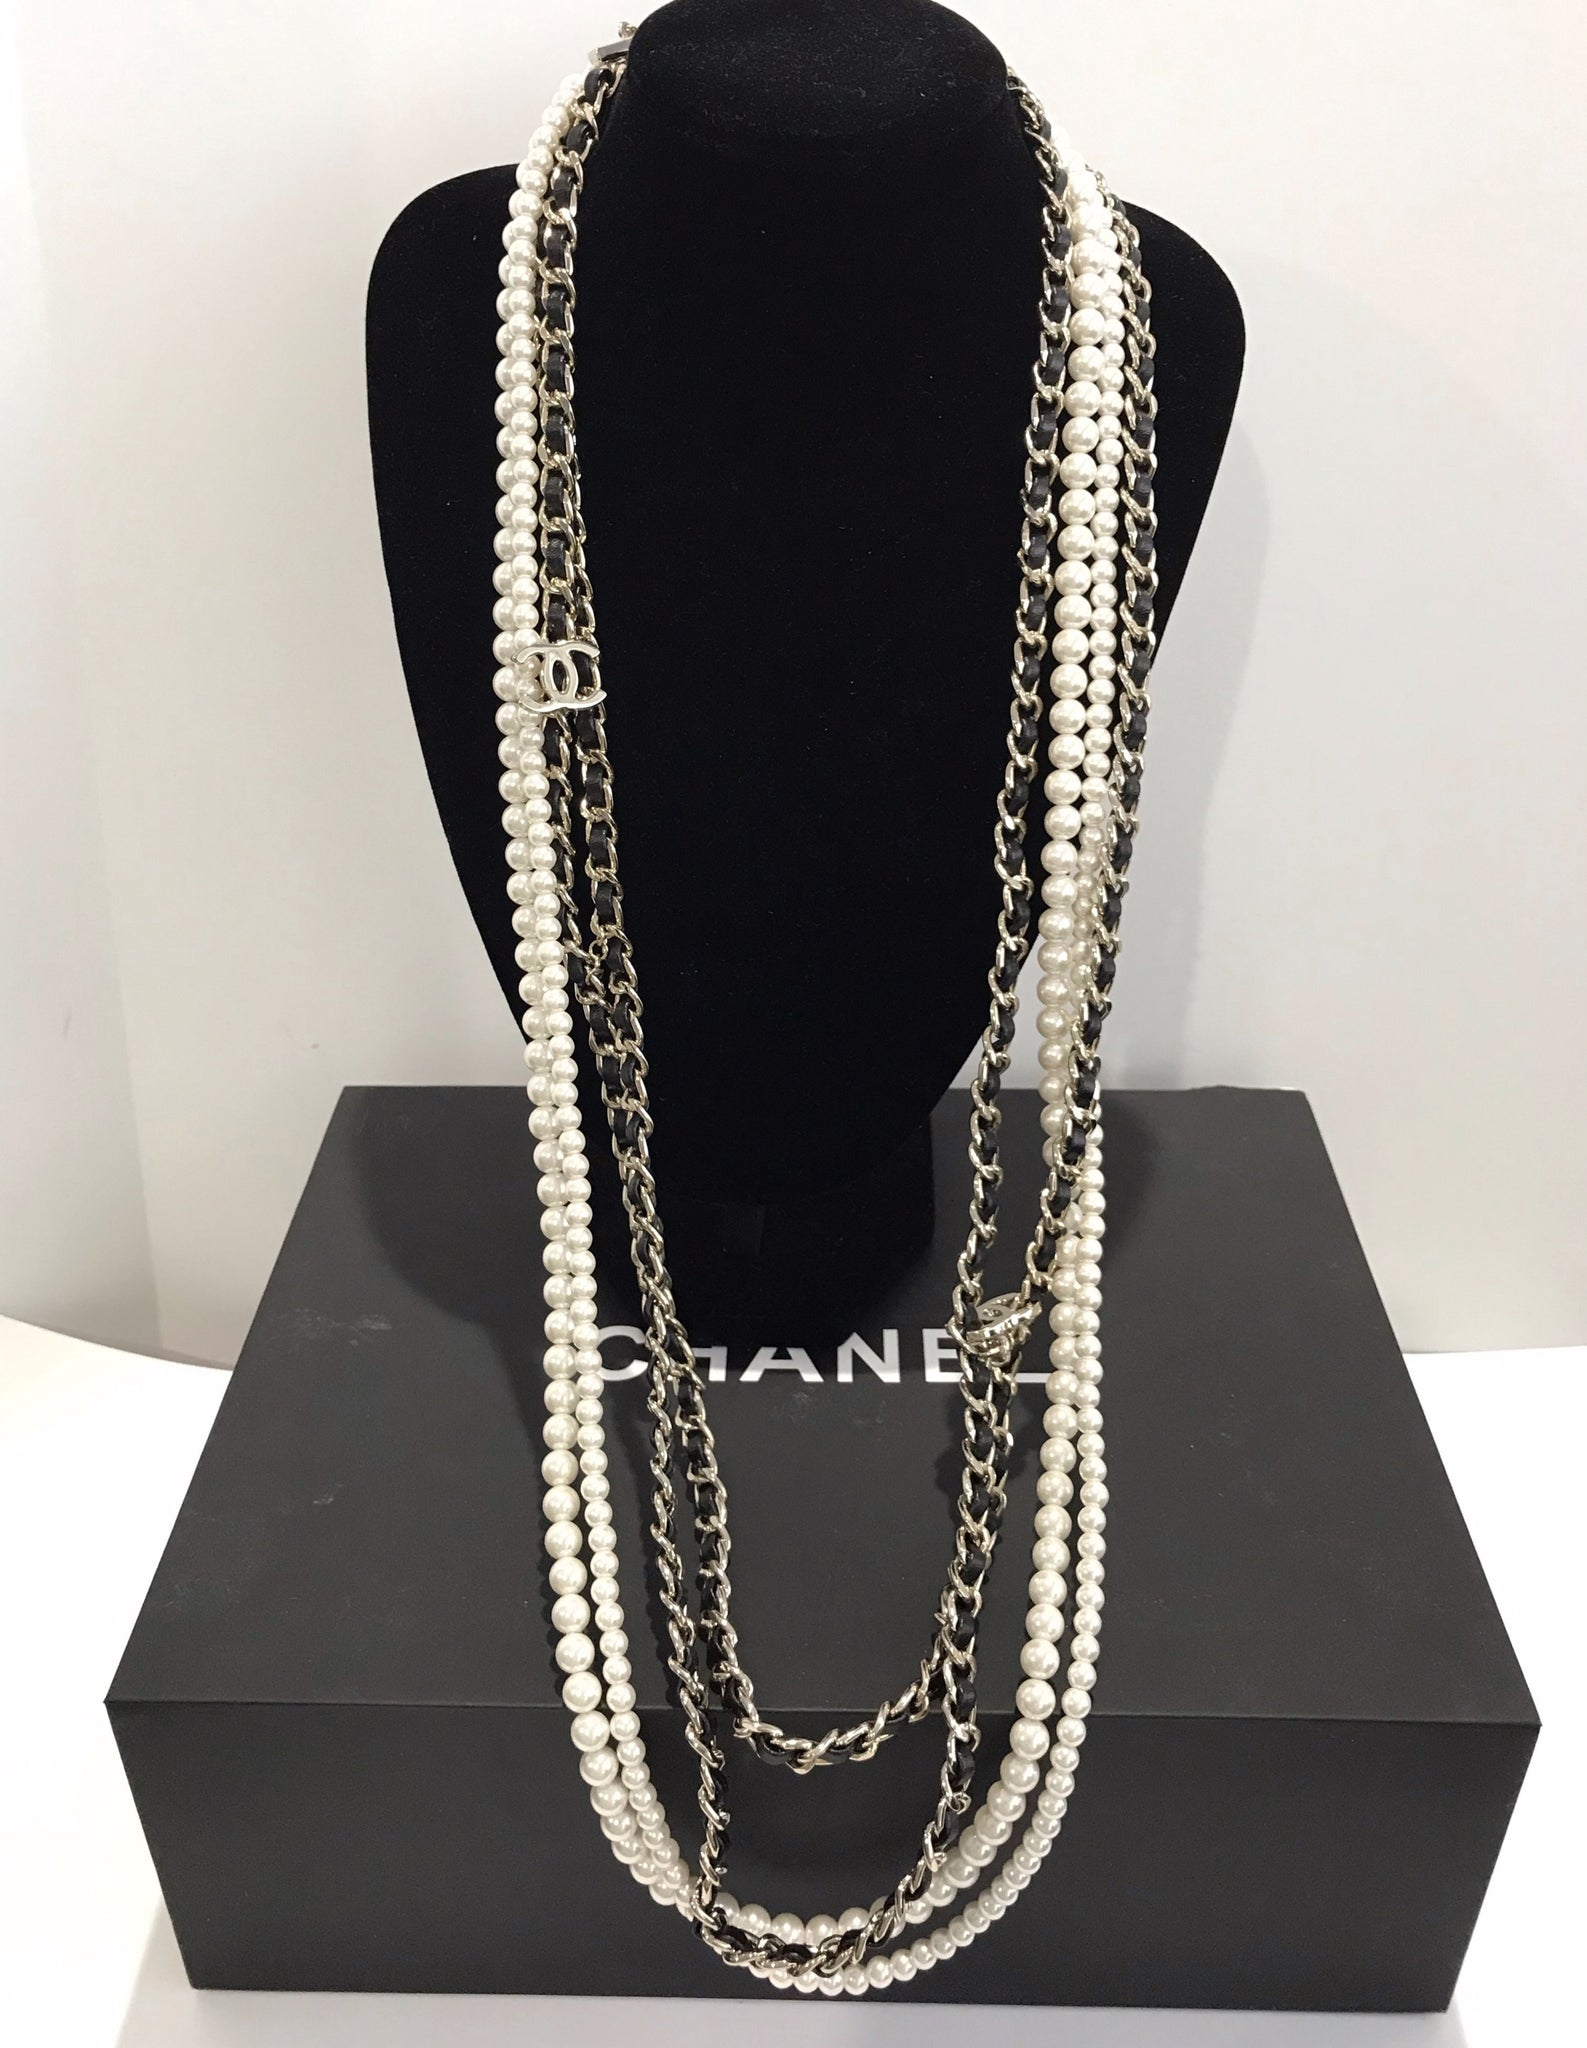 Chanel Layered Necklace